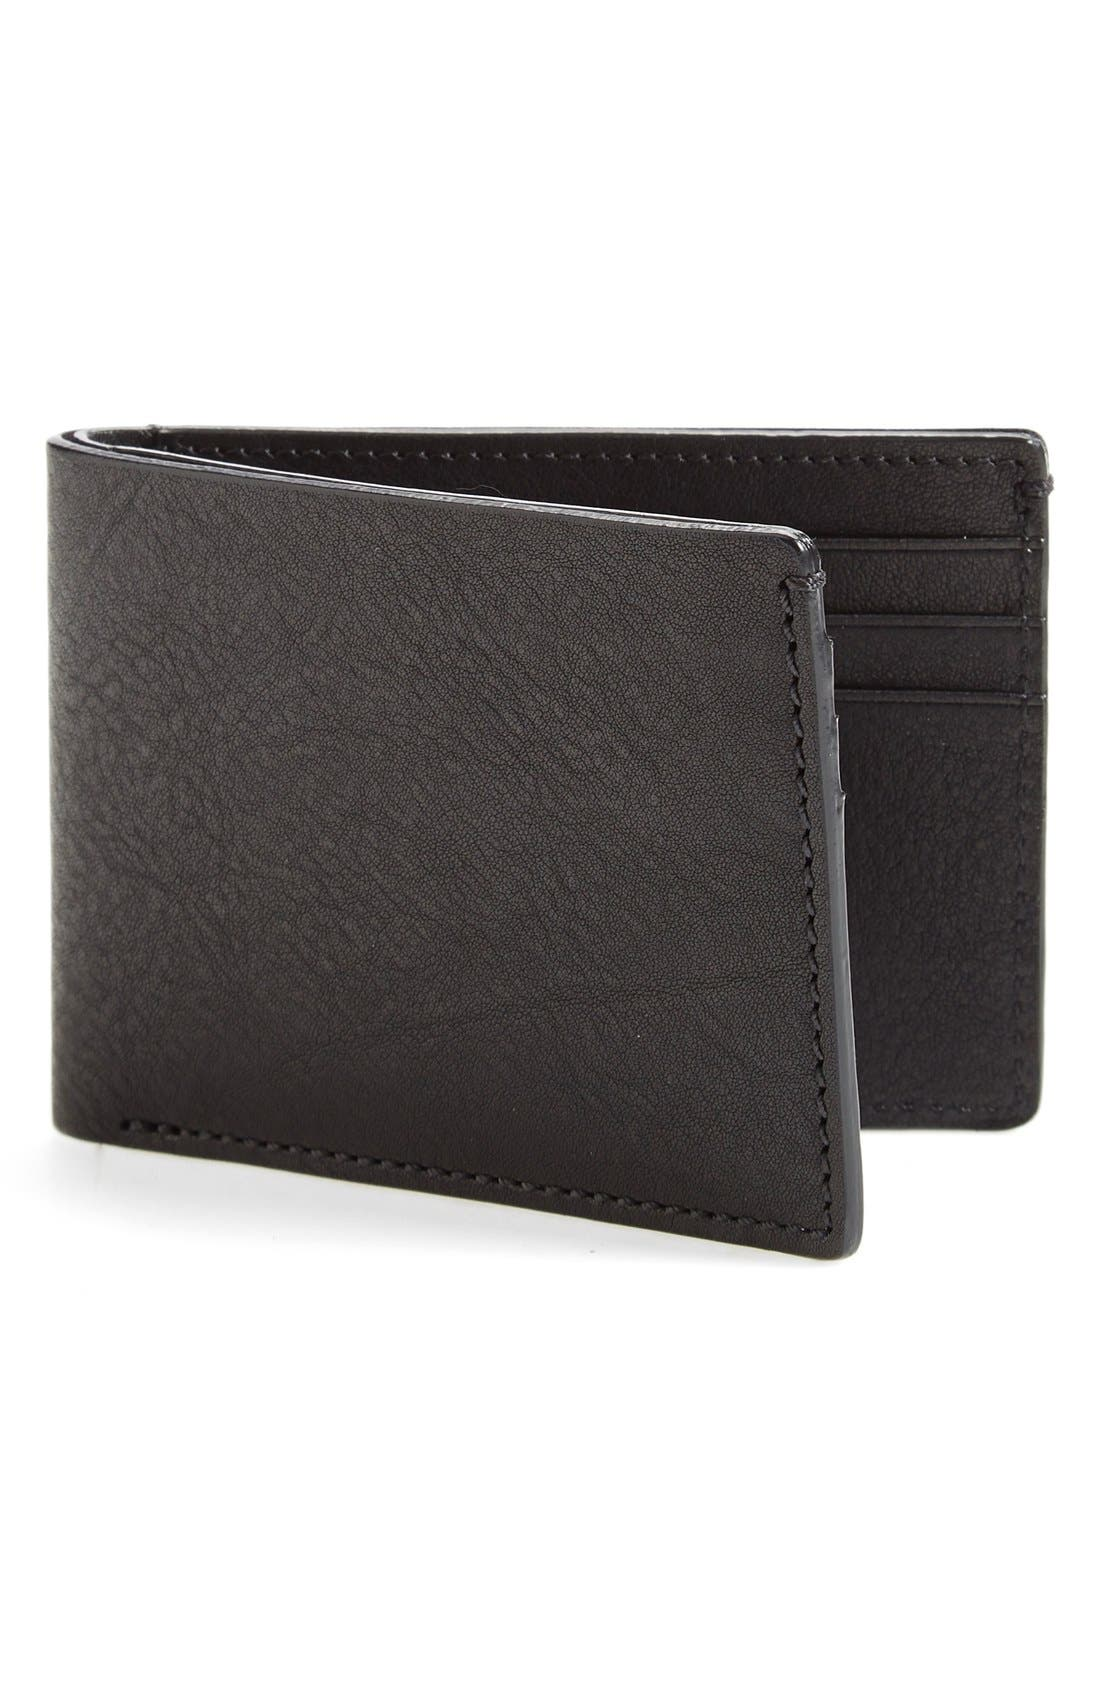 BOSCA Leather Wallet